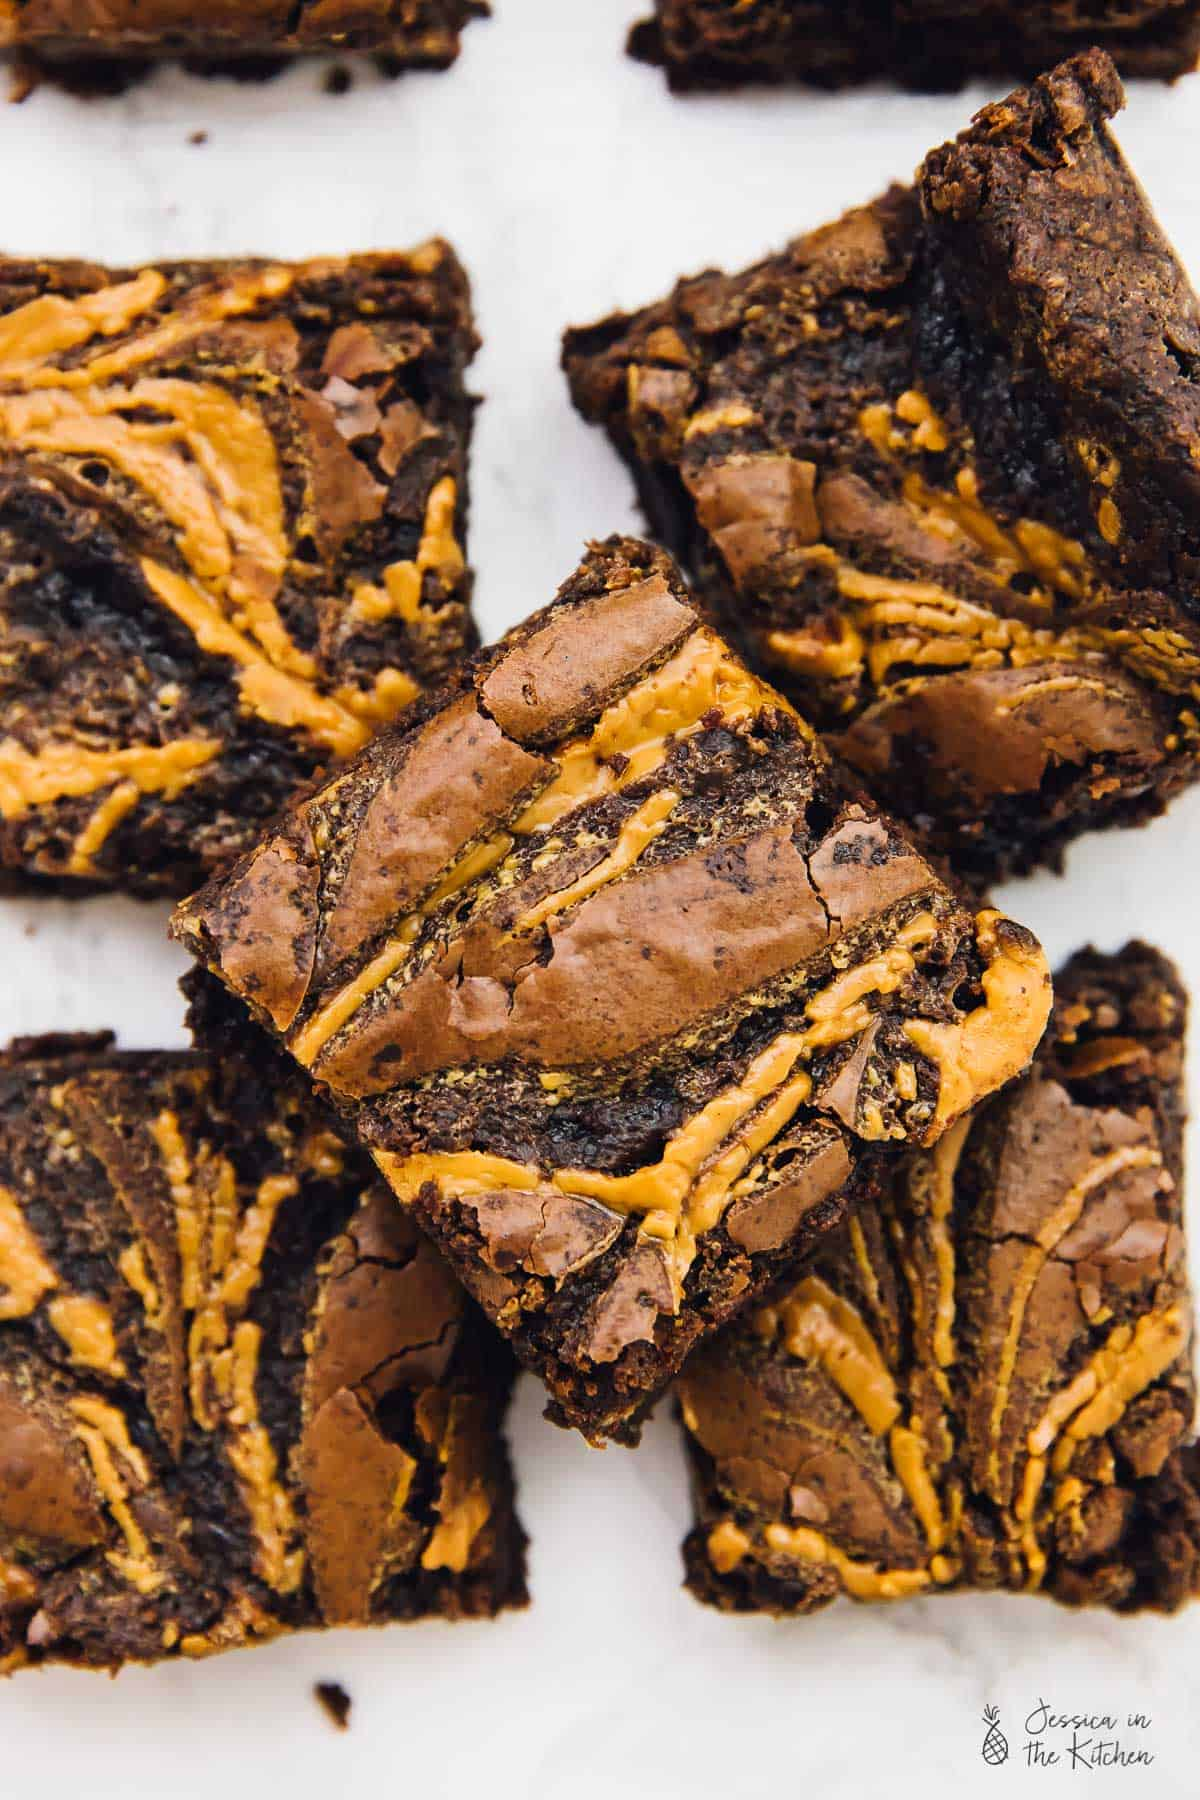 These Vegan Chocolate Peanut Butter Swirl Brownies are beyond addictive! They are chewy, fudgy, rich in chocolate and peanut butter and so easy to make! via https://jessicainthekitchen.com